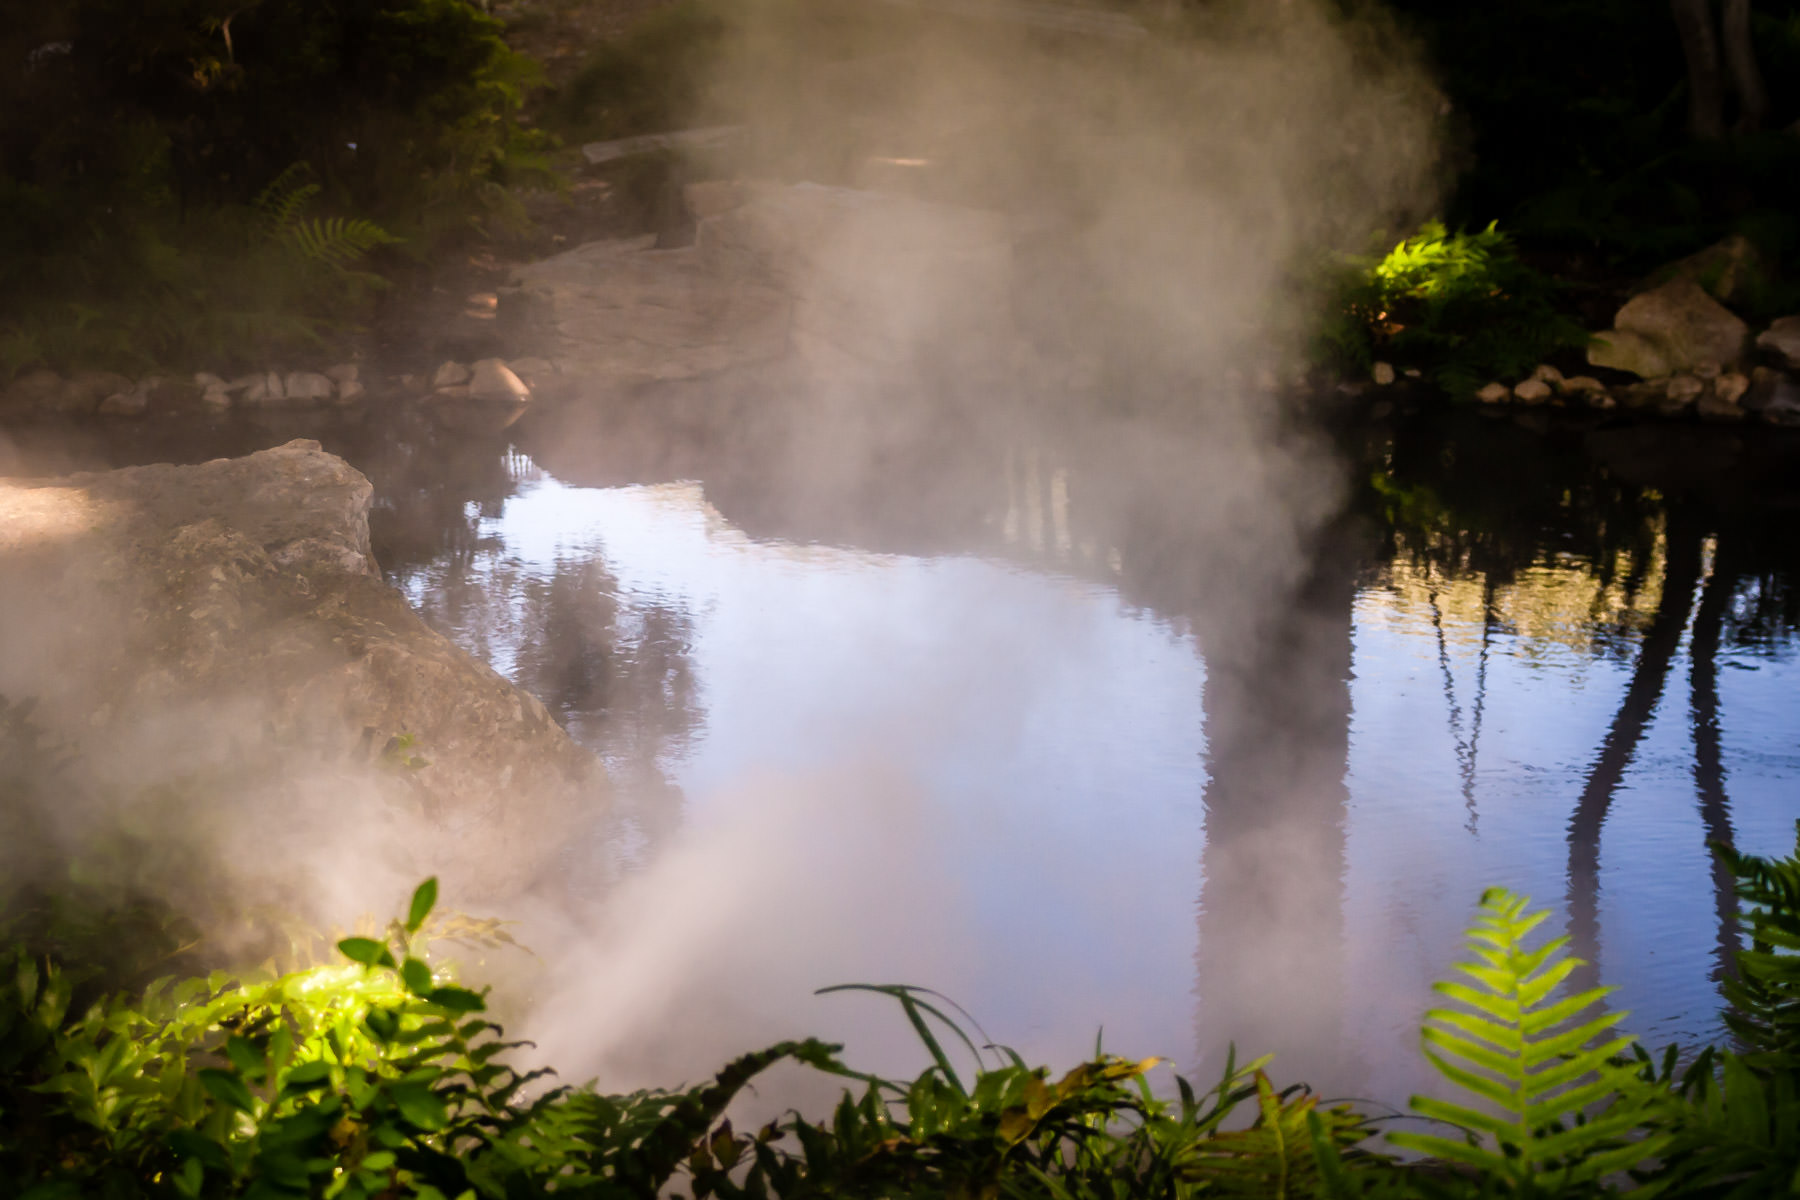 Mist forms over a pond at the Dallas Arboretum.